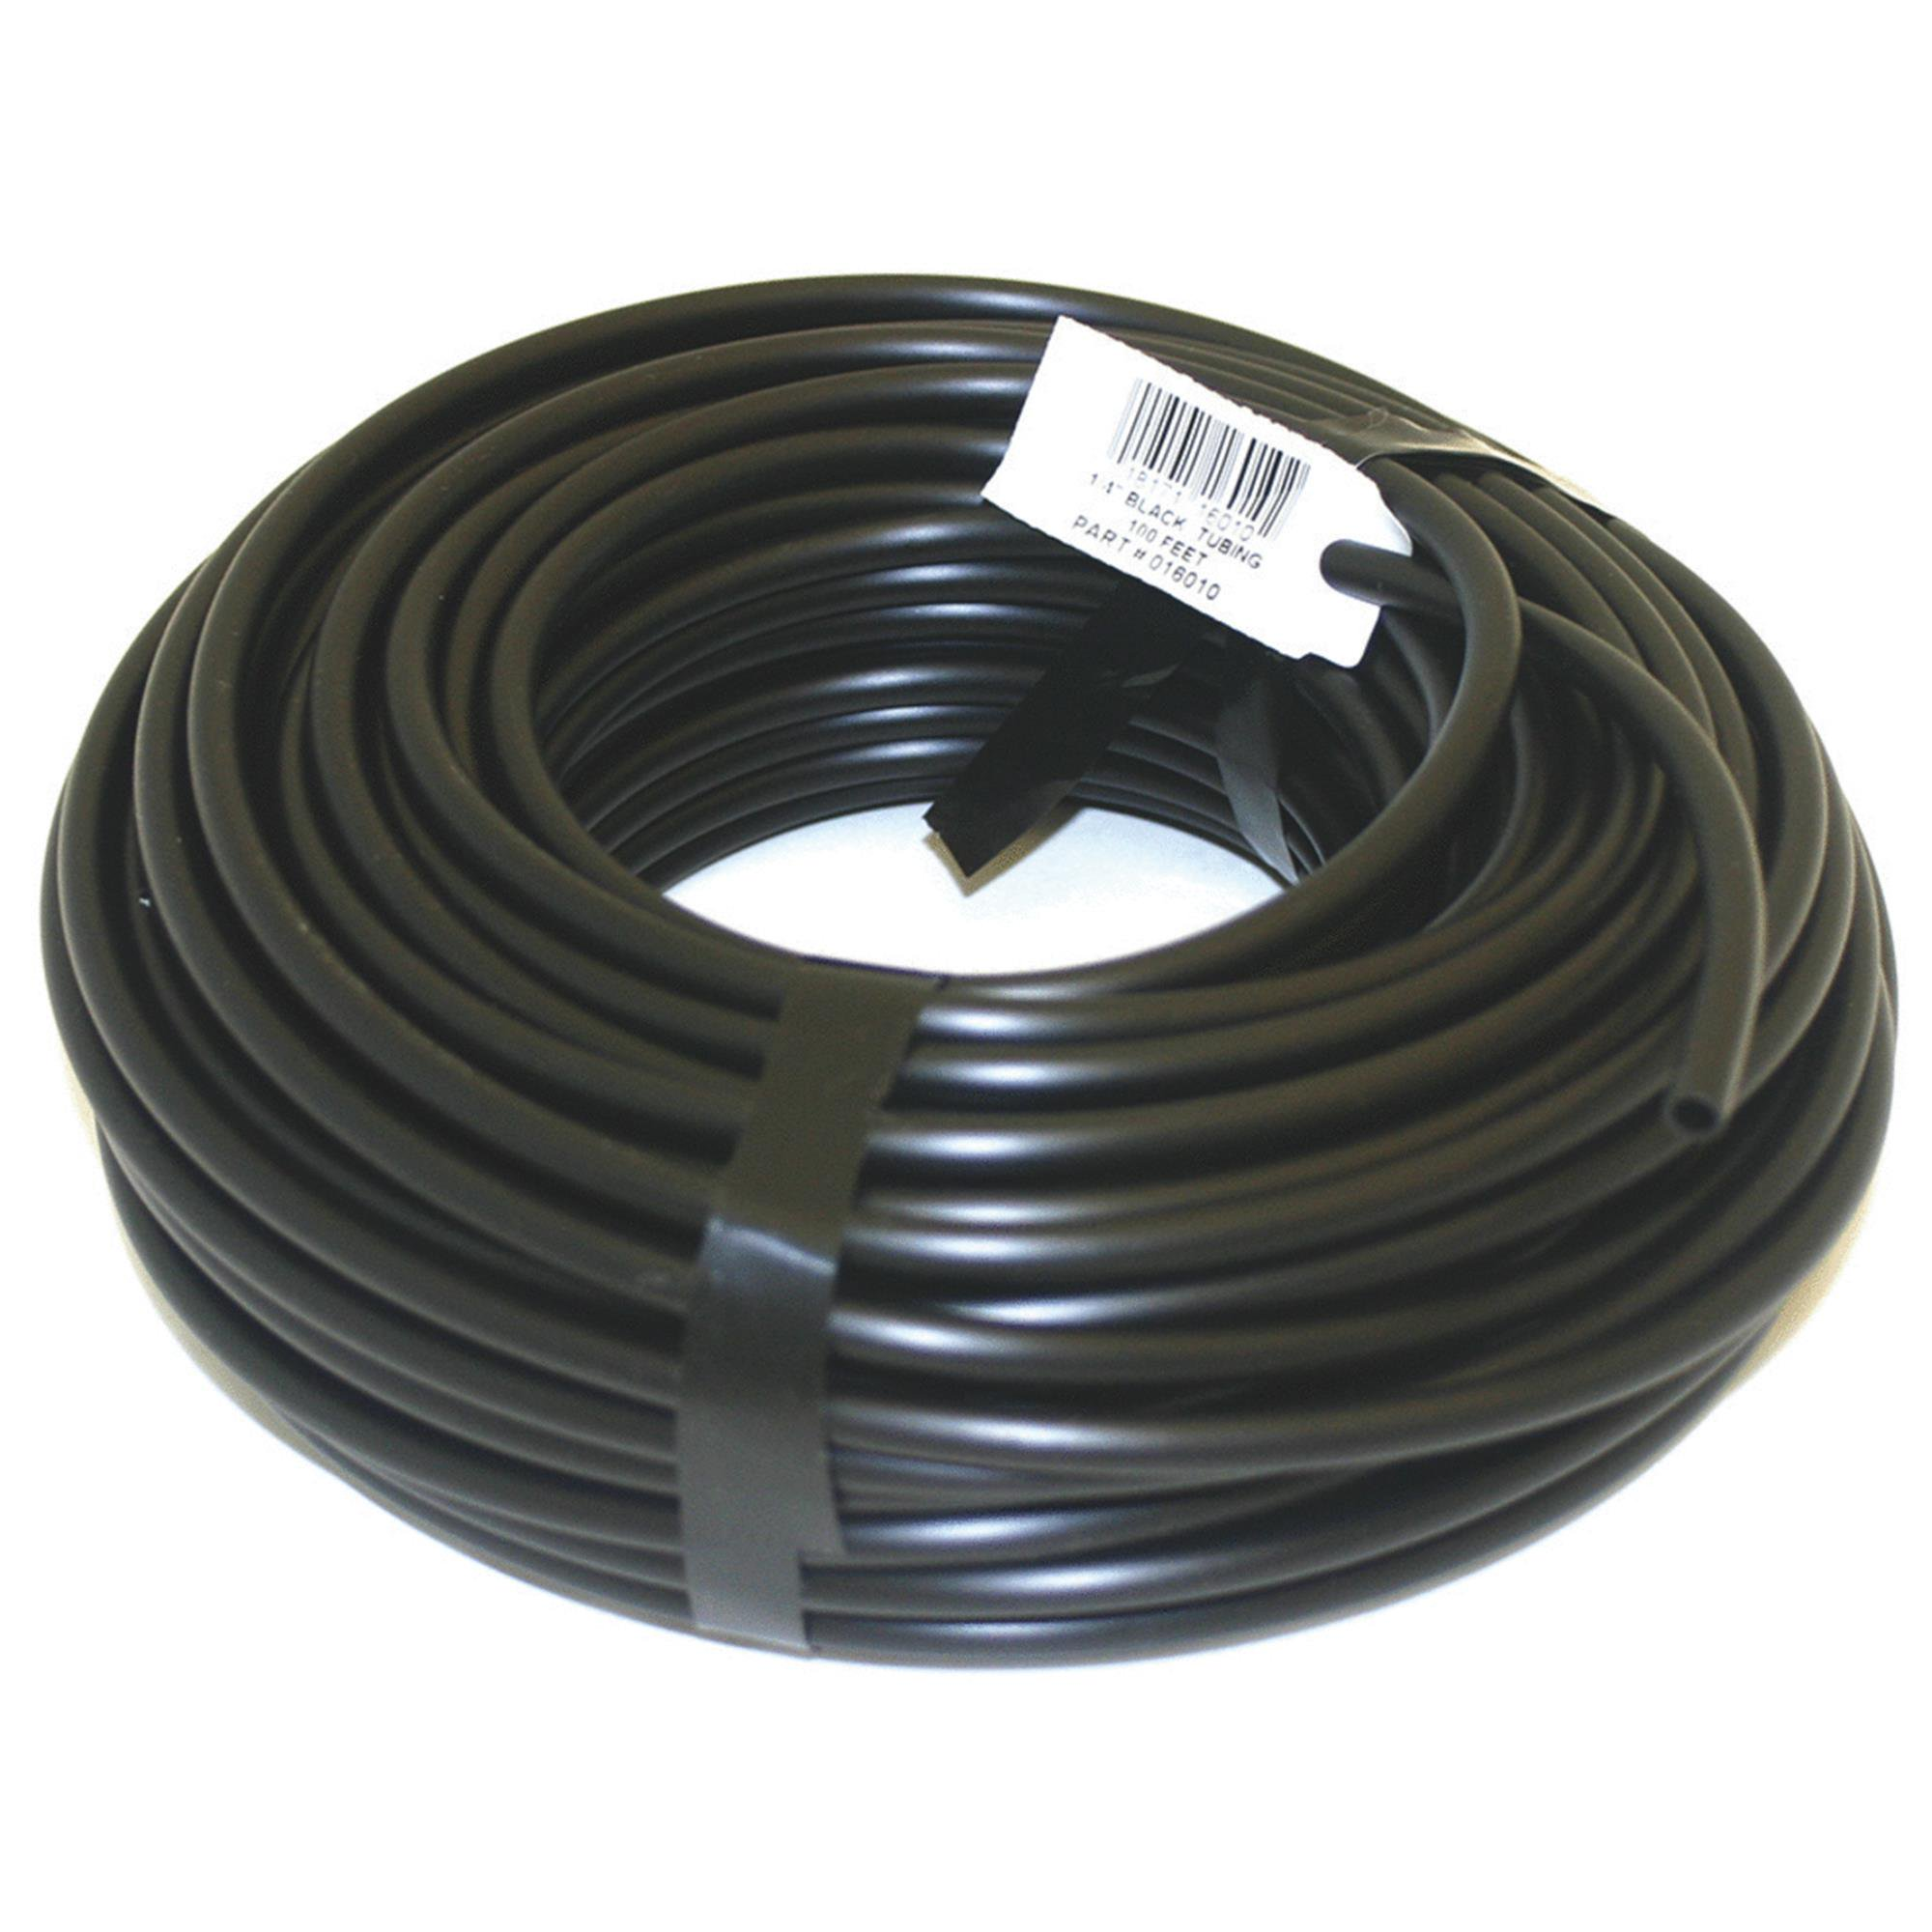 Raindrip 016010T 1/4 in X 100' Black Tubing